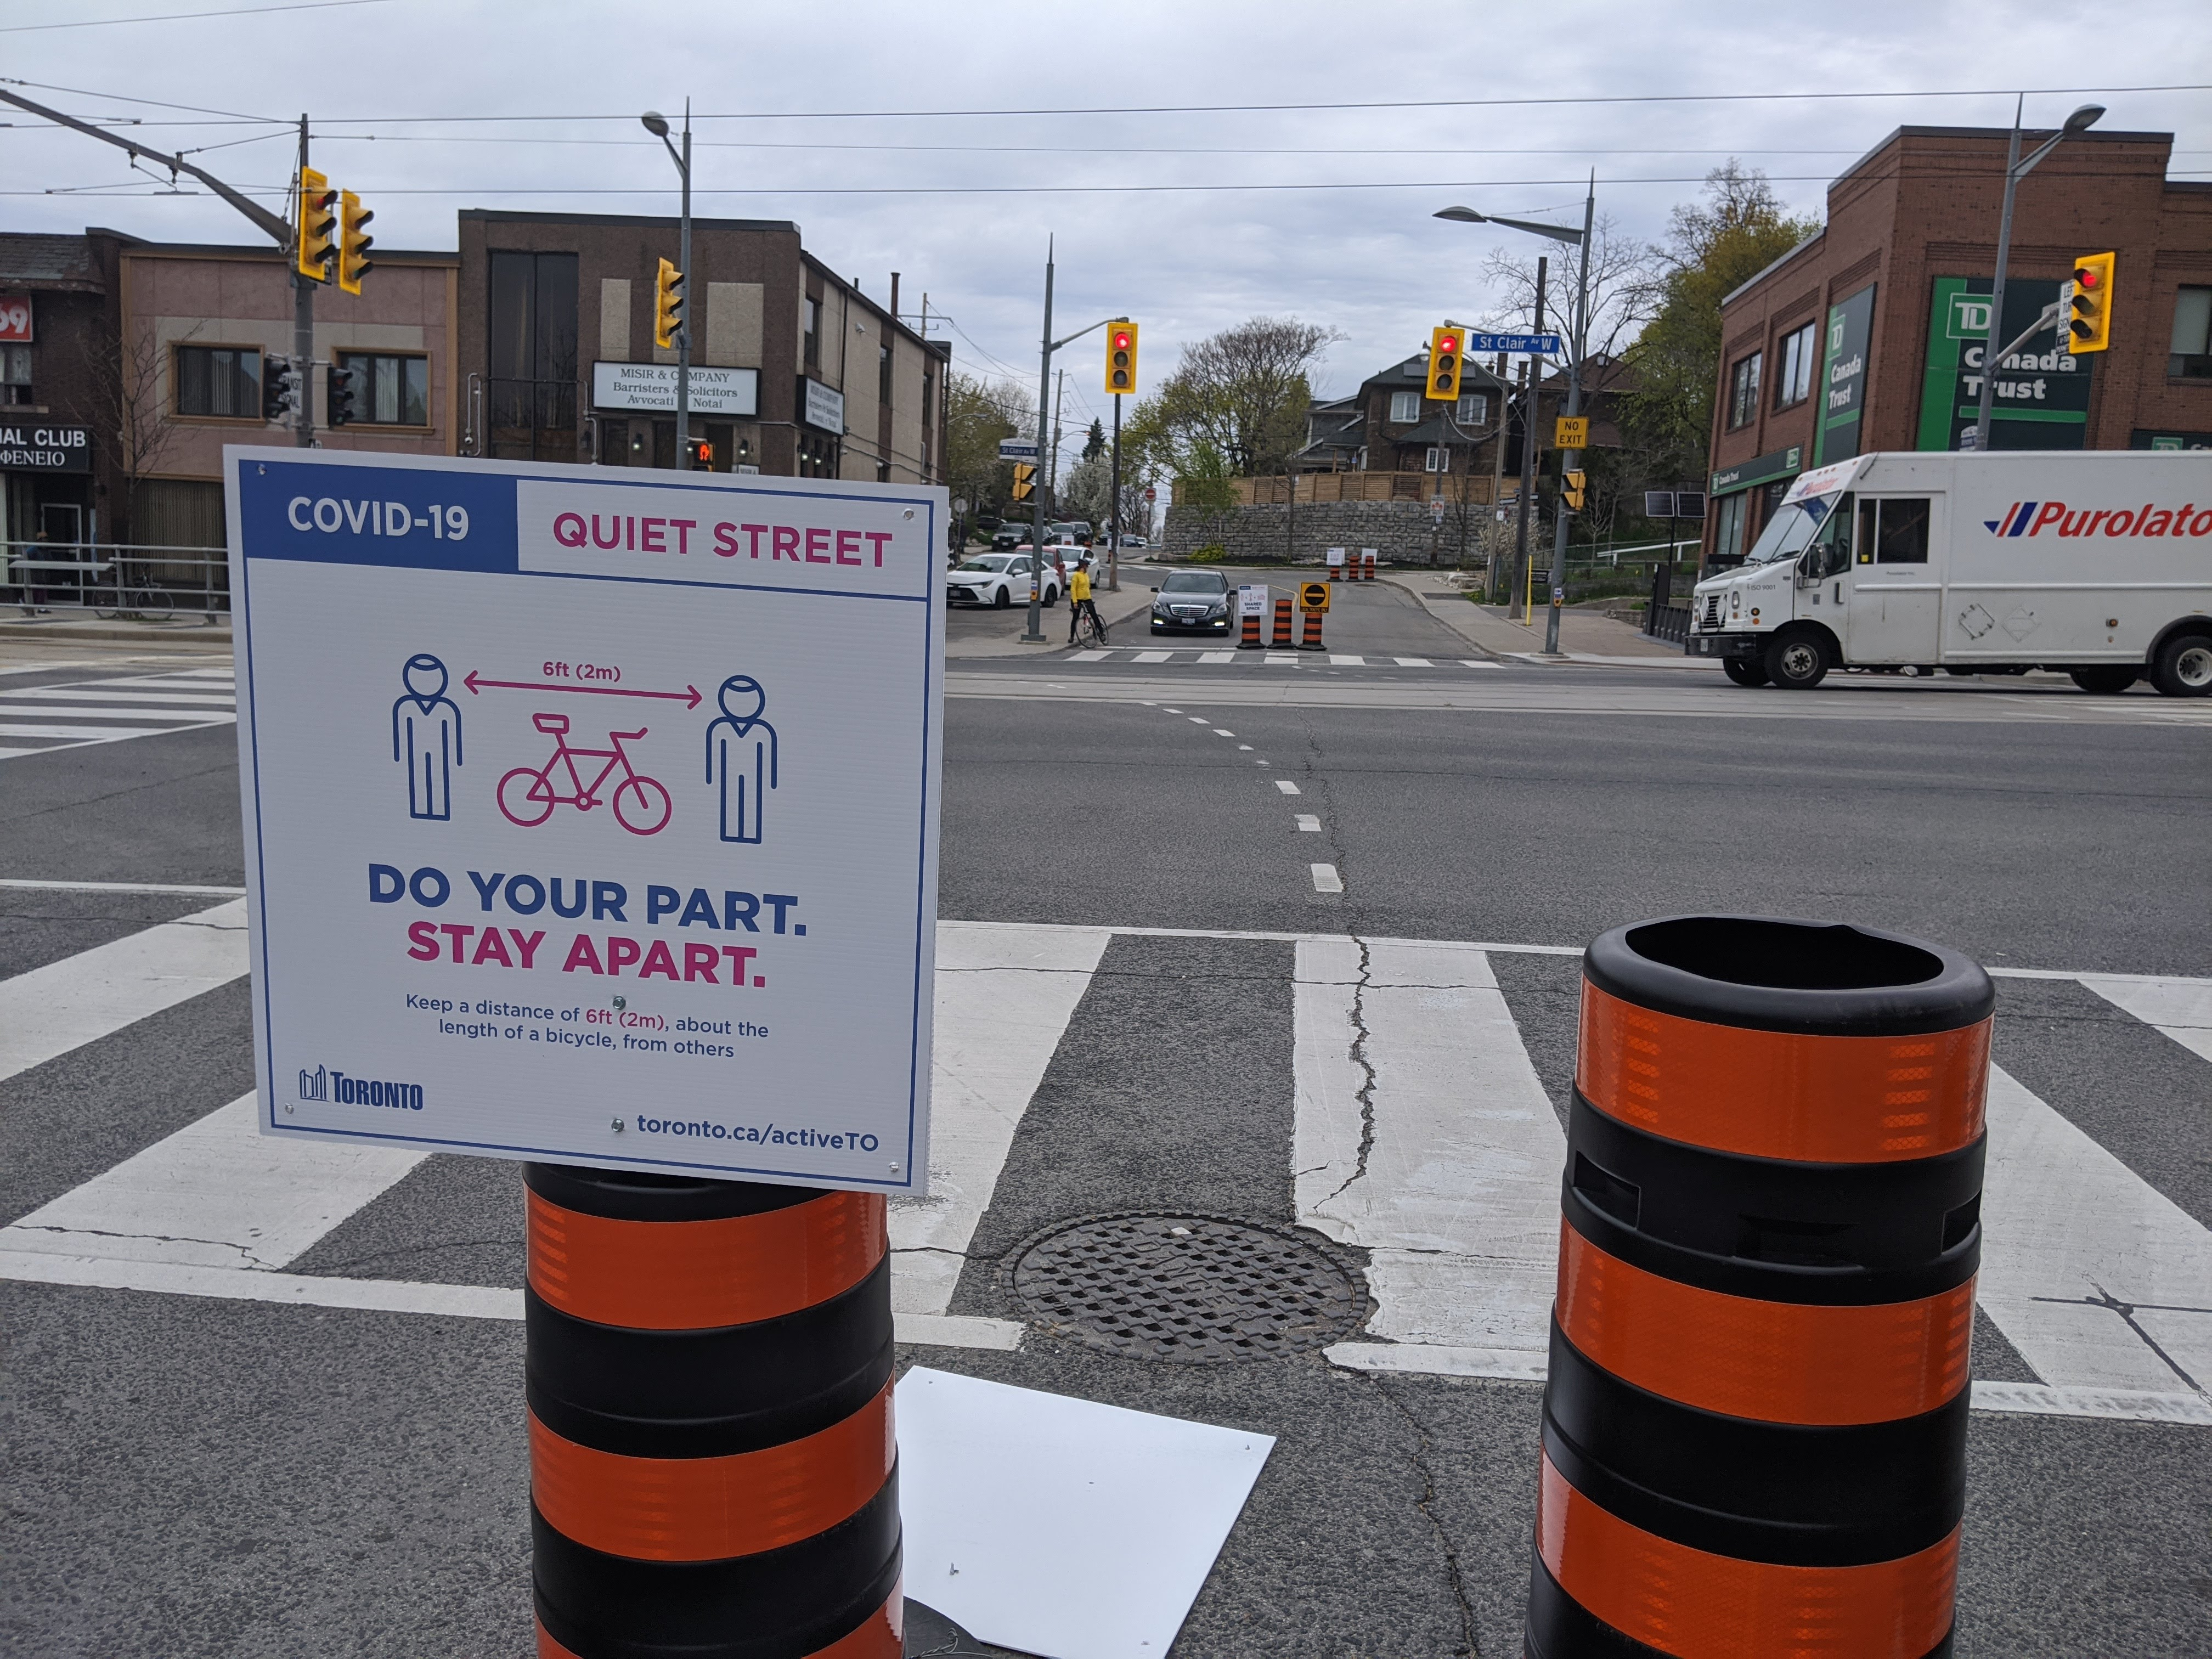 Sign and orange barrels in middle of street indicate that it is a Quiet Street for sharing